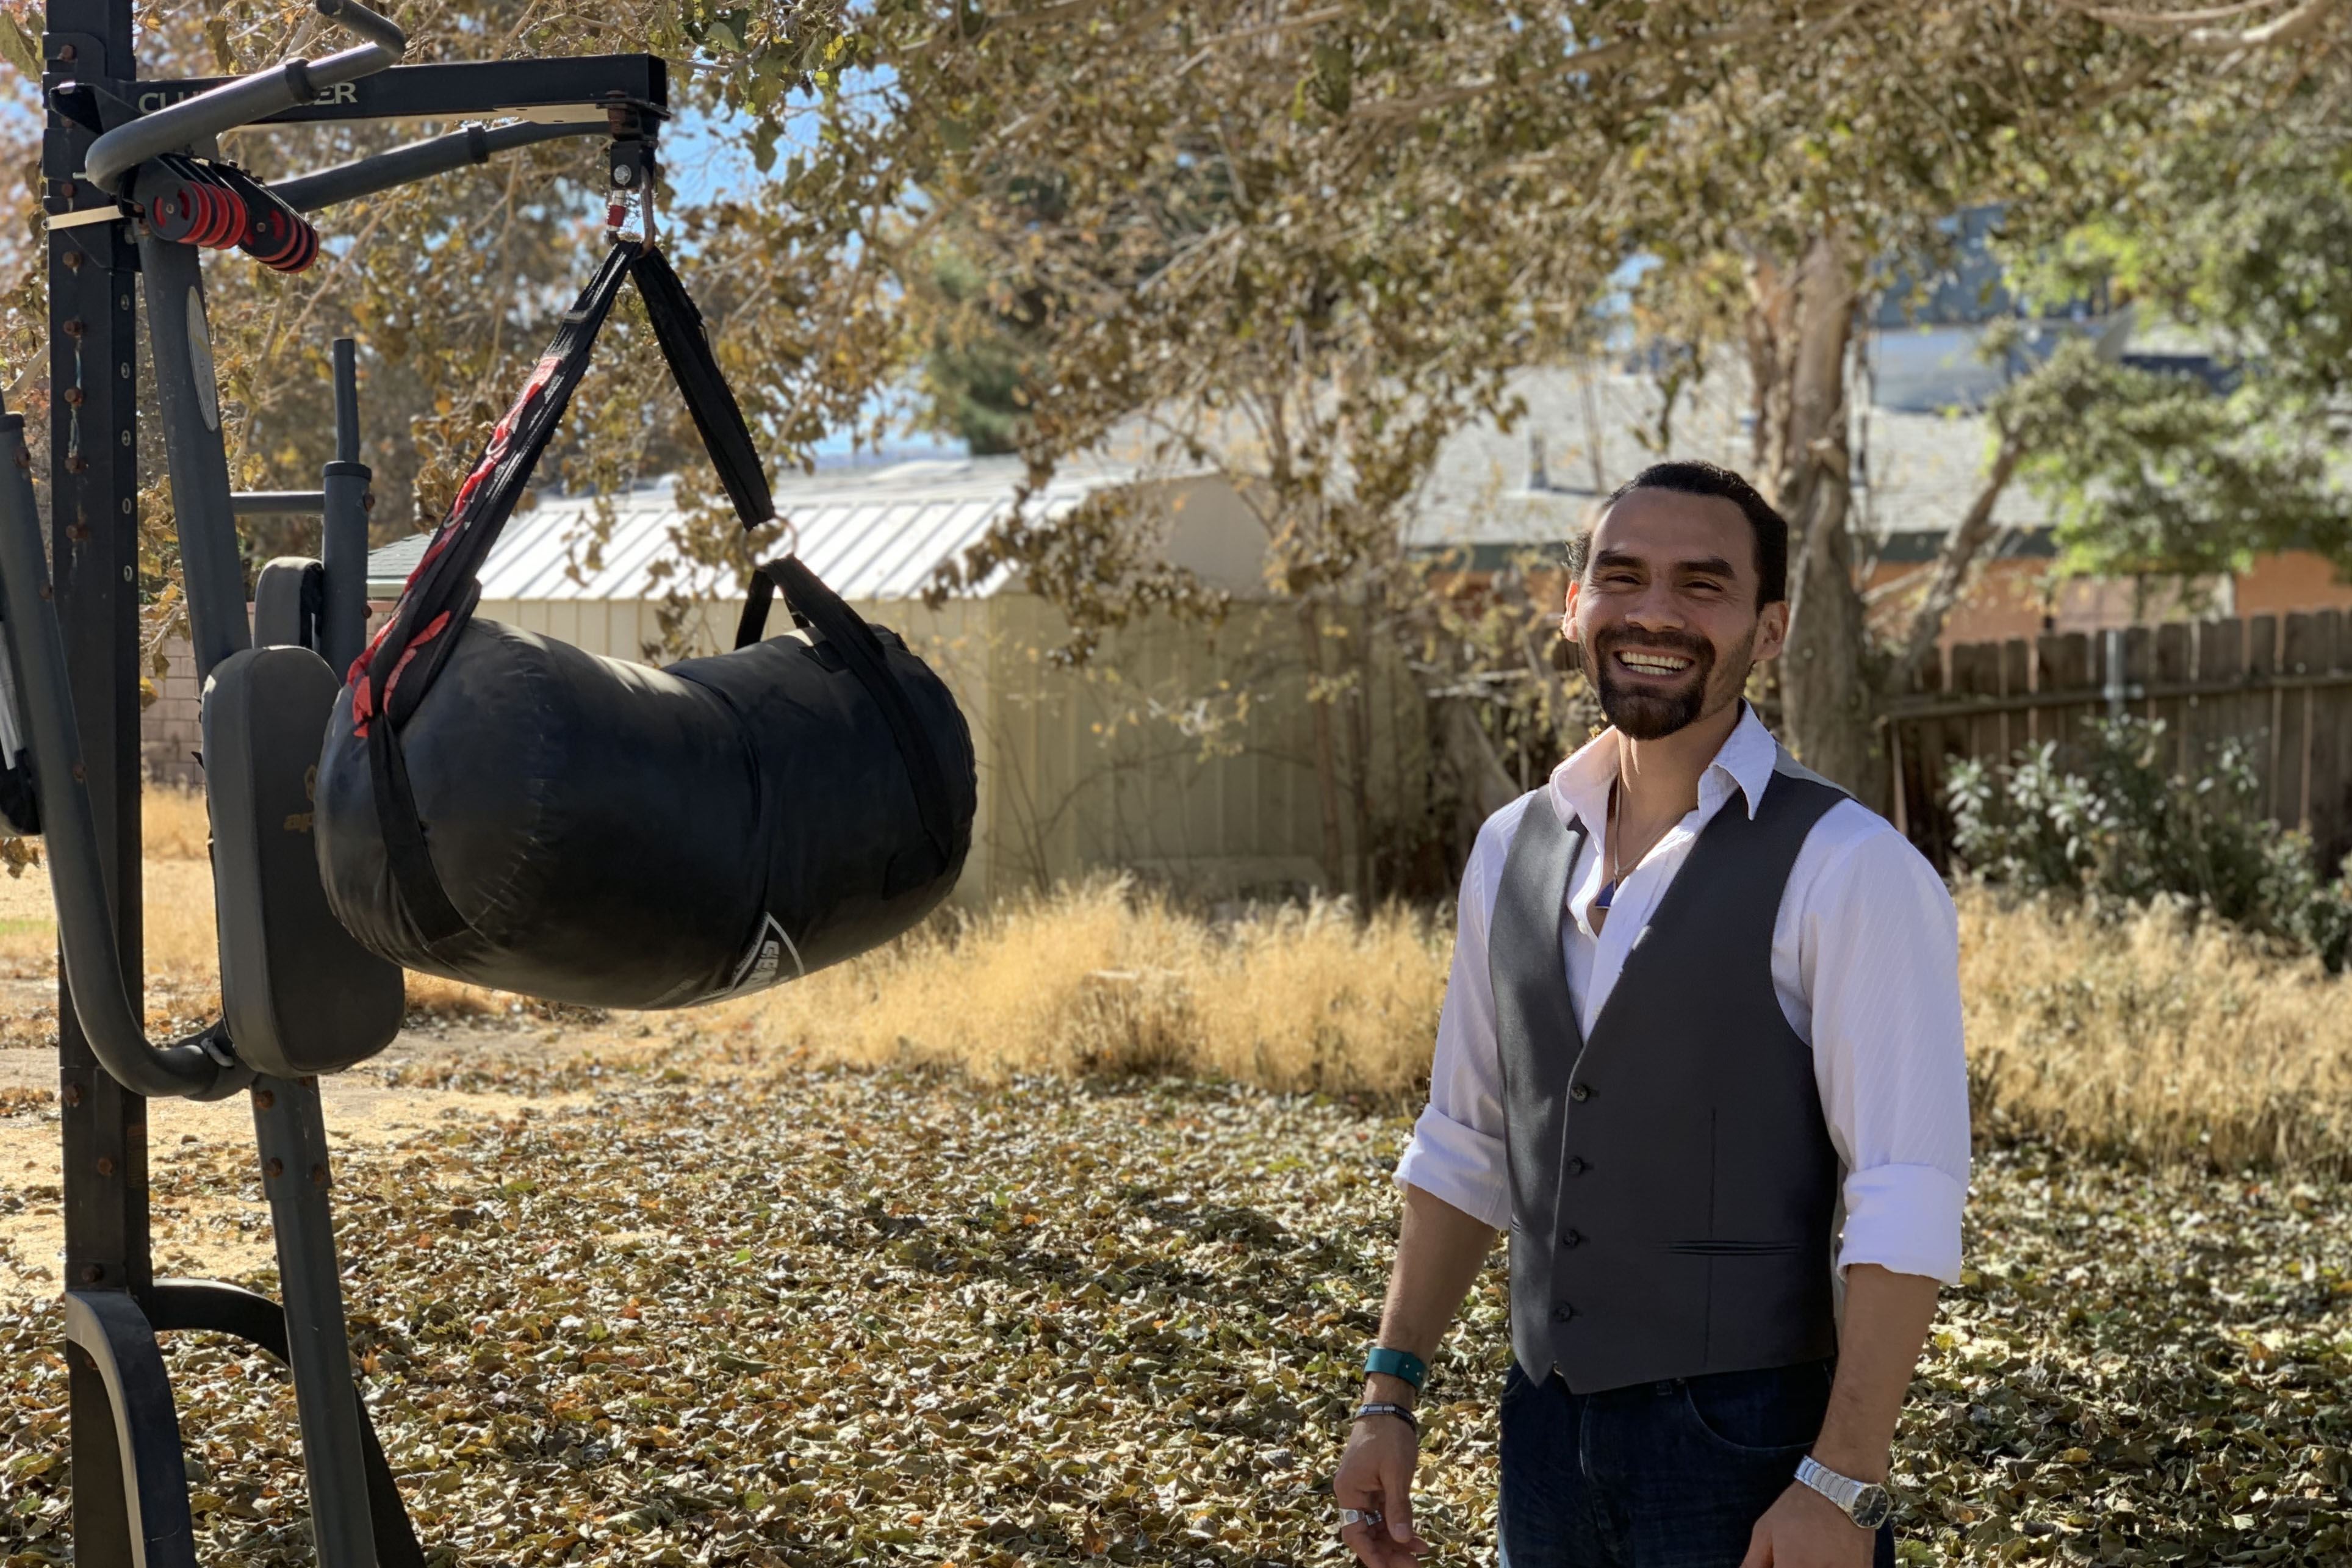 Caption: Army veteran Jesus Medina says exercising with his punching bag helps him release energy. Medina says he's still dealing with grief from his time in the military., Credit: Emily Elena Dugdale / American Homefront